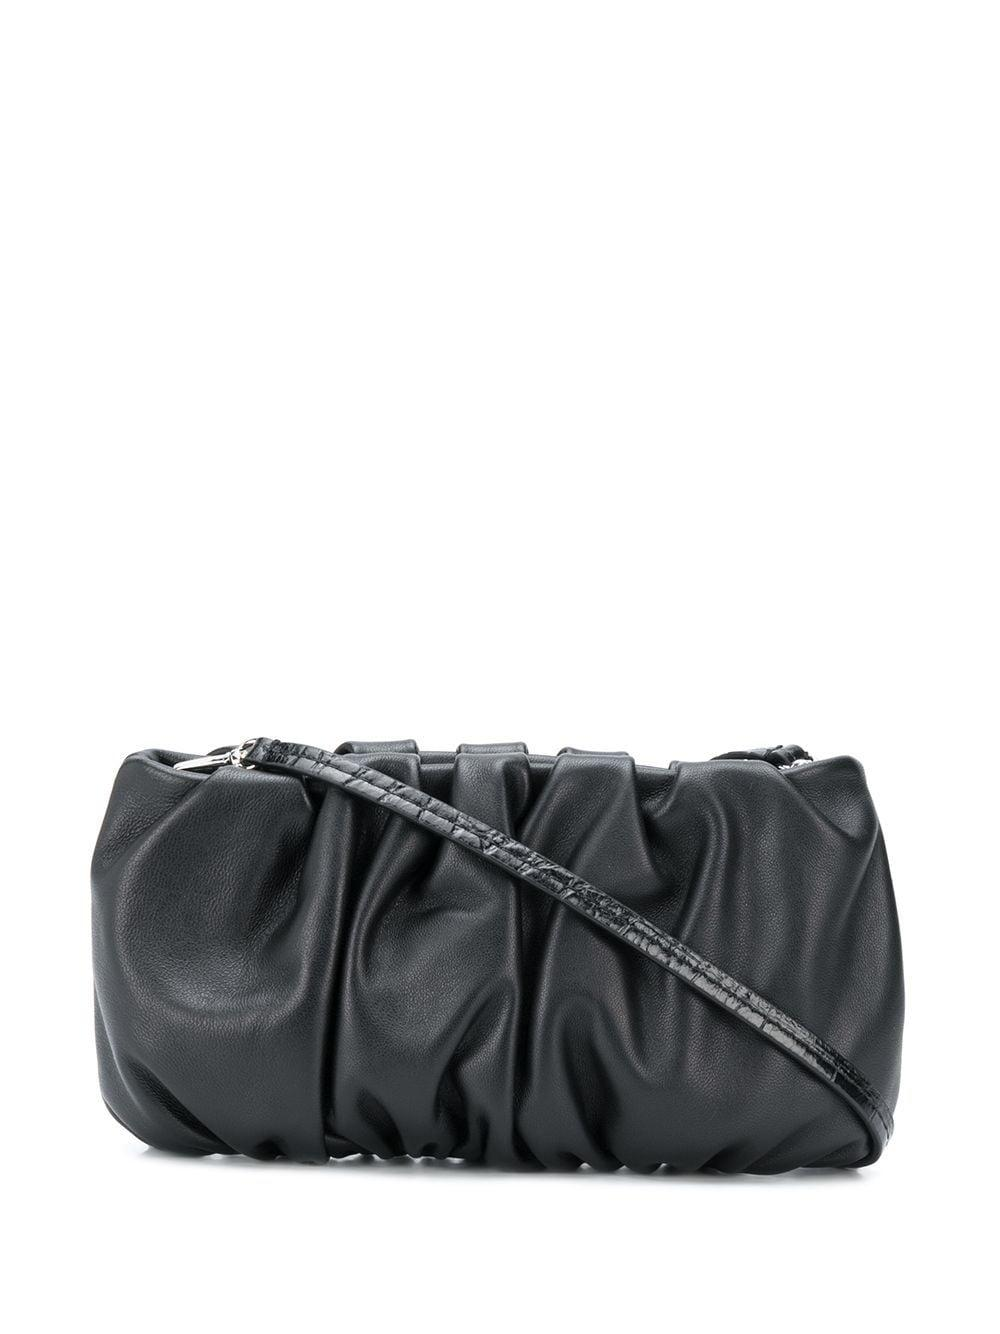 Bean Convertible Bag